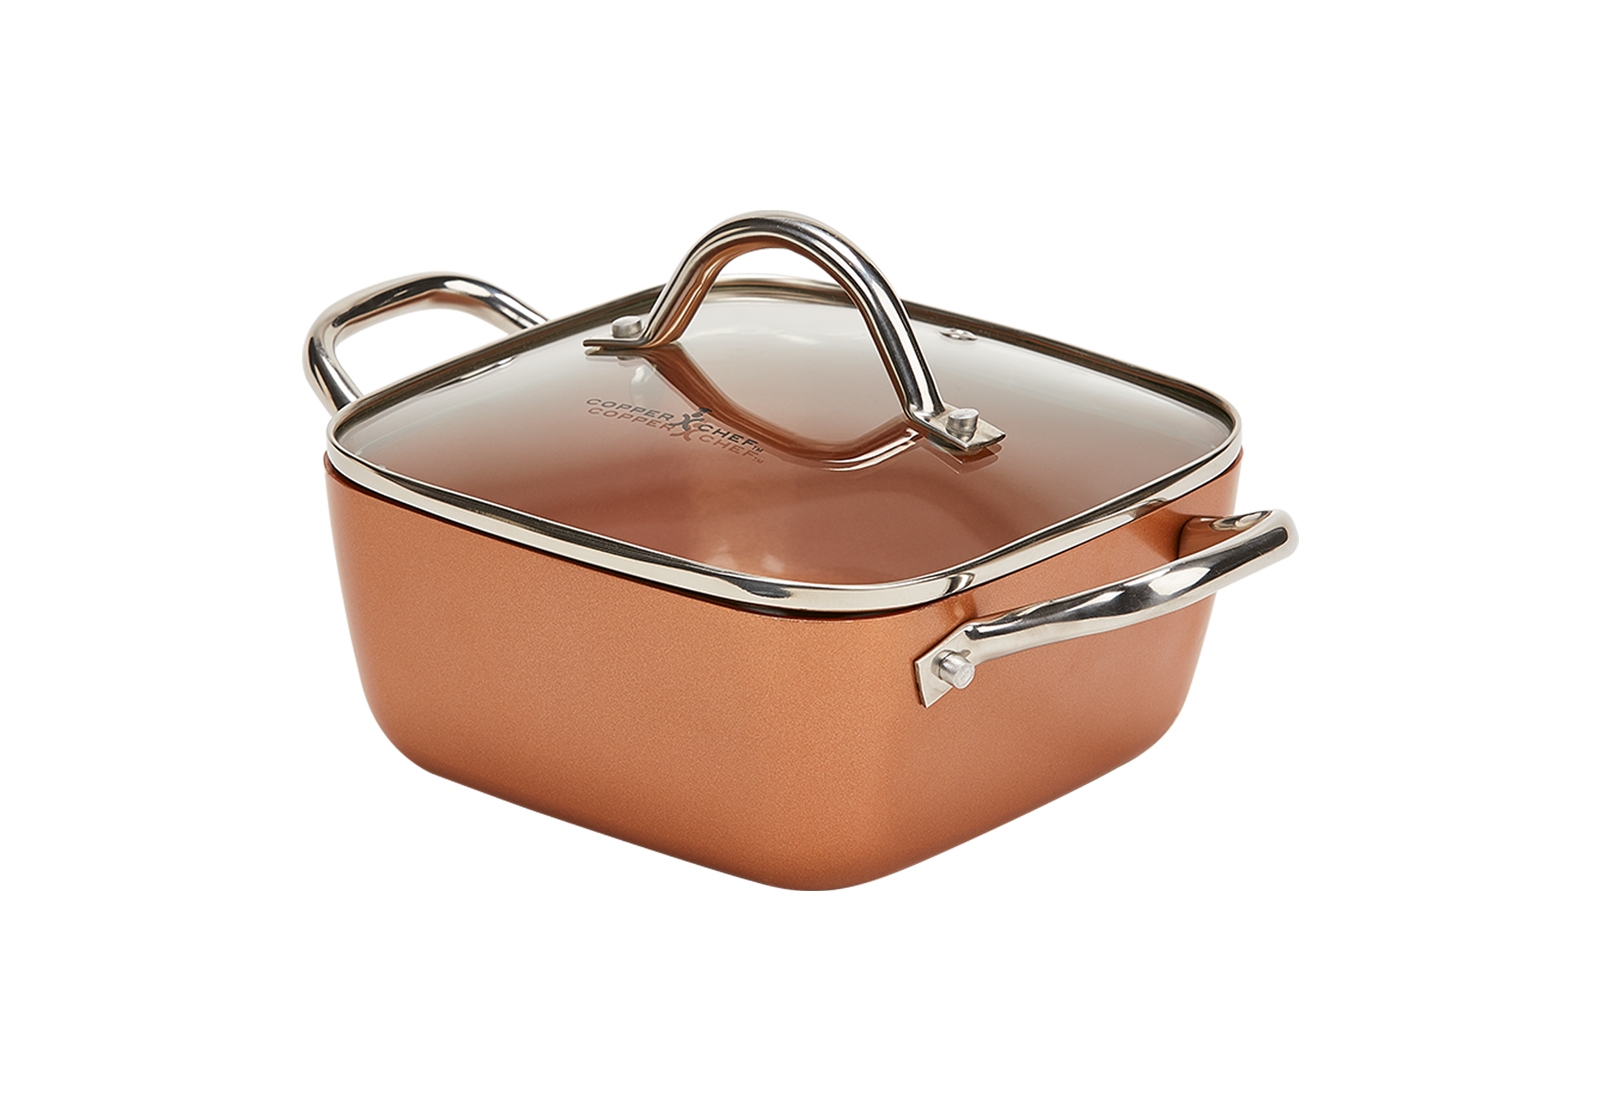 Copper Chef Everyday Pan Product Image